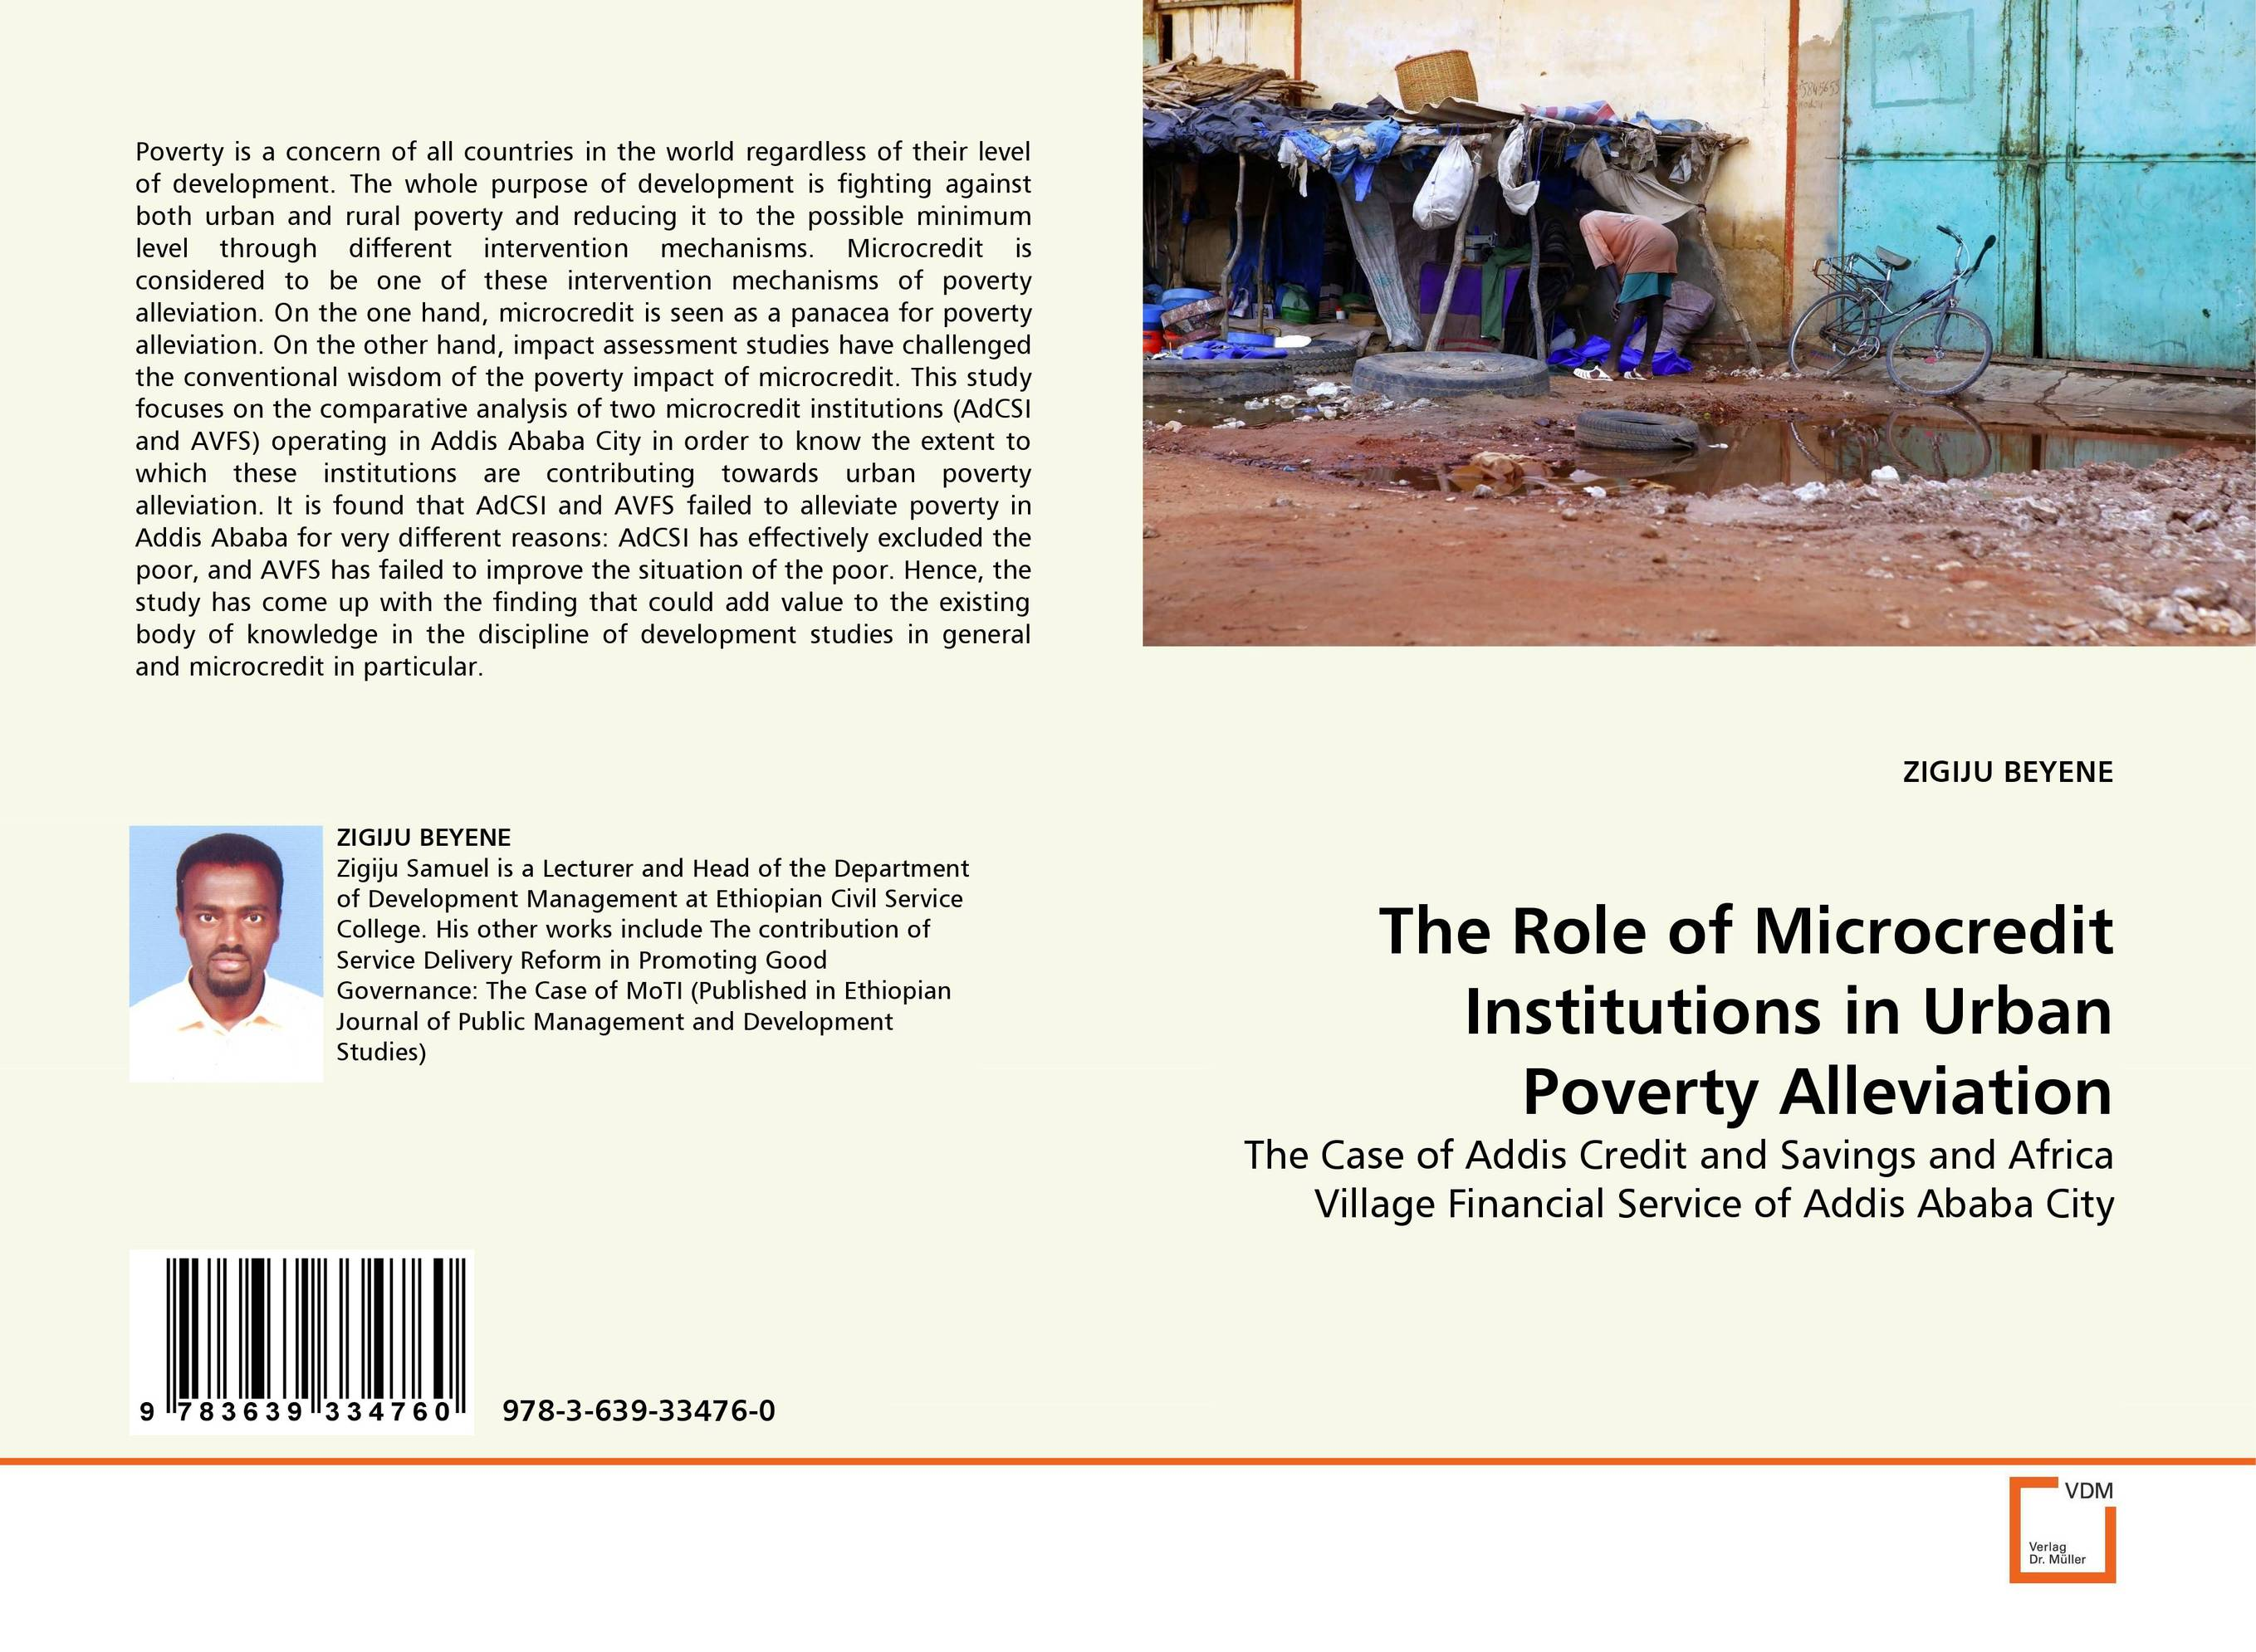 The Role of Microcredit Institutions in Urban Poverty Alleviation mp3 плеер ruizu x05